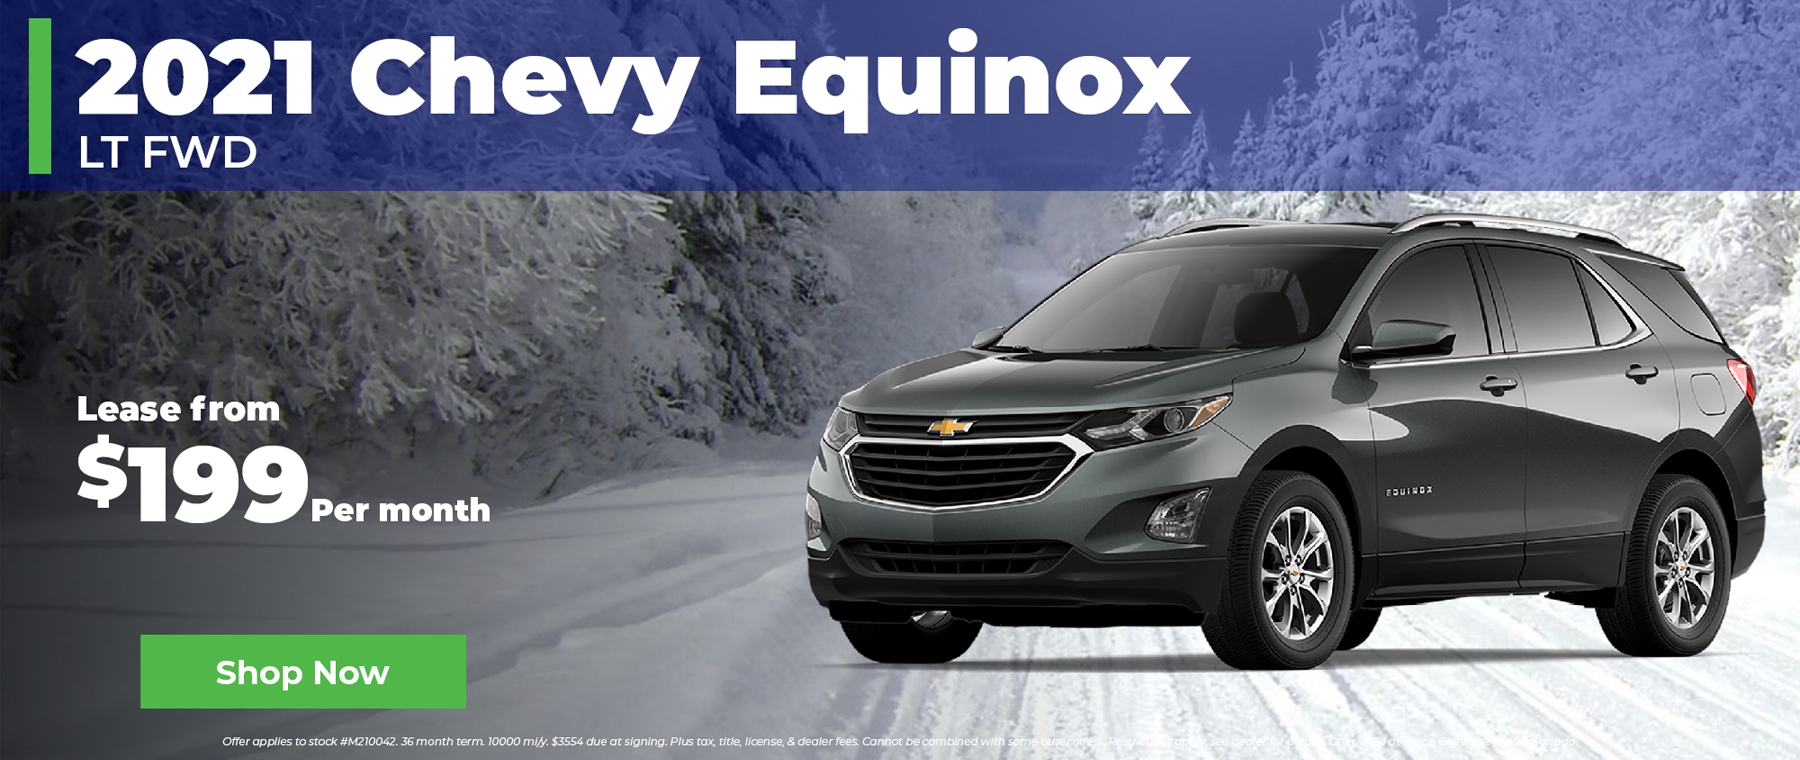 2021 Chevy Equinox $199 per month in Mukwonago WI